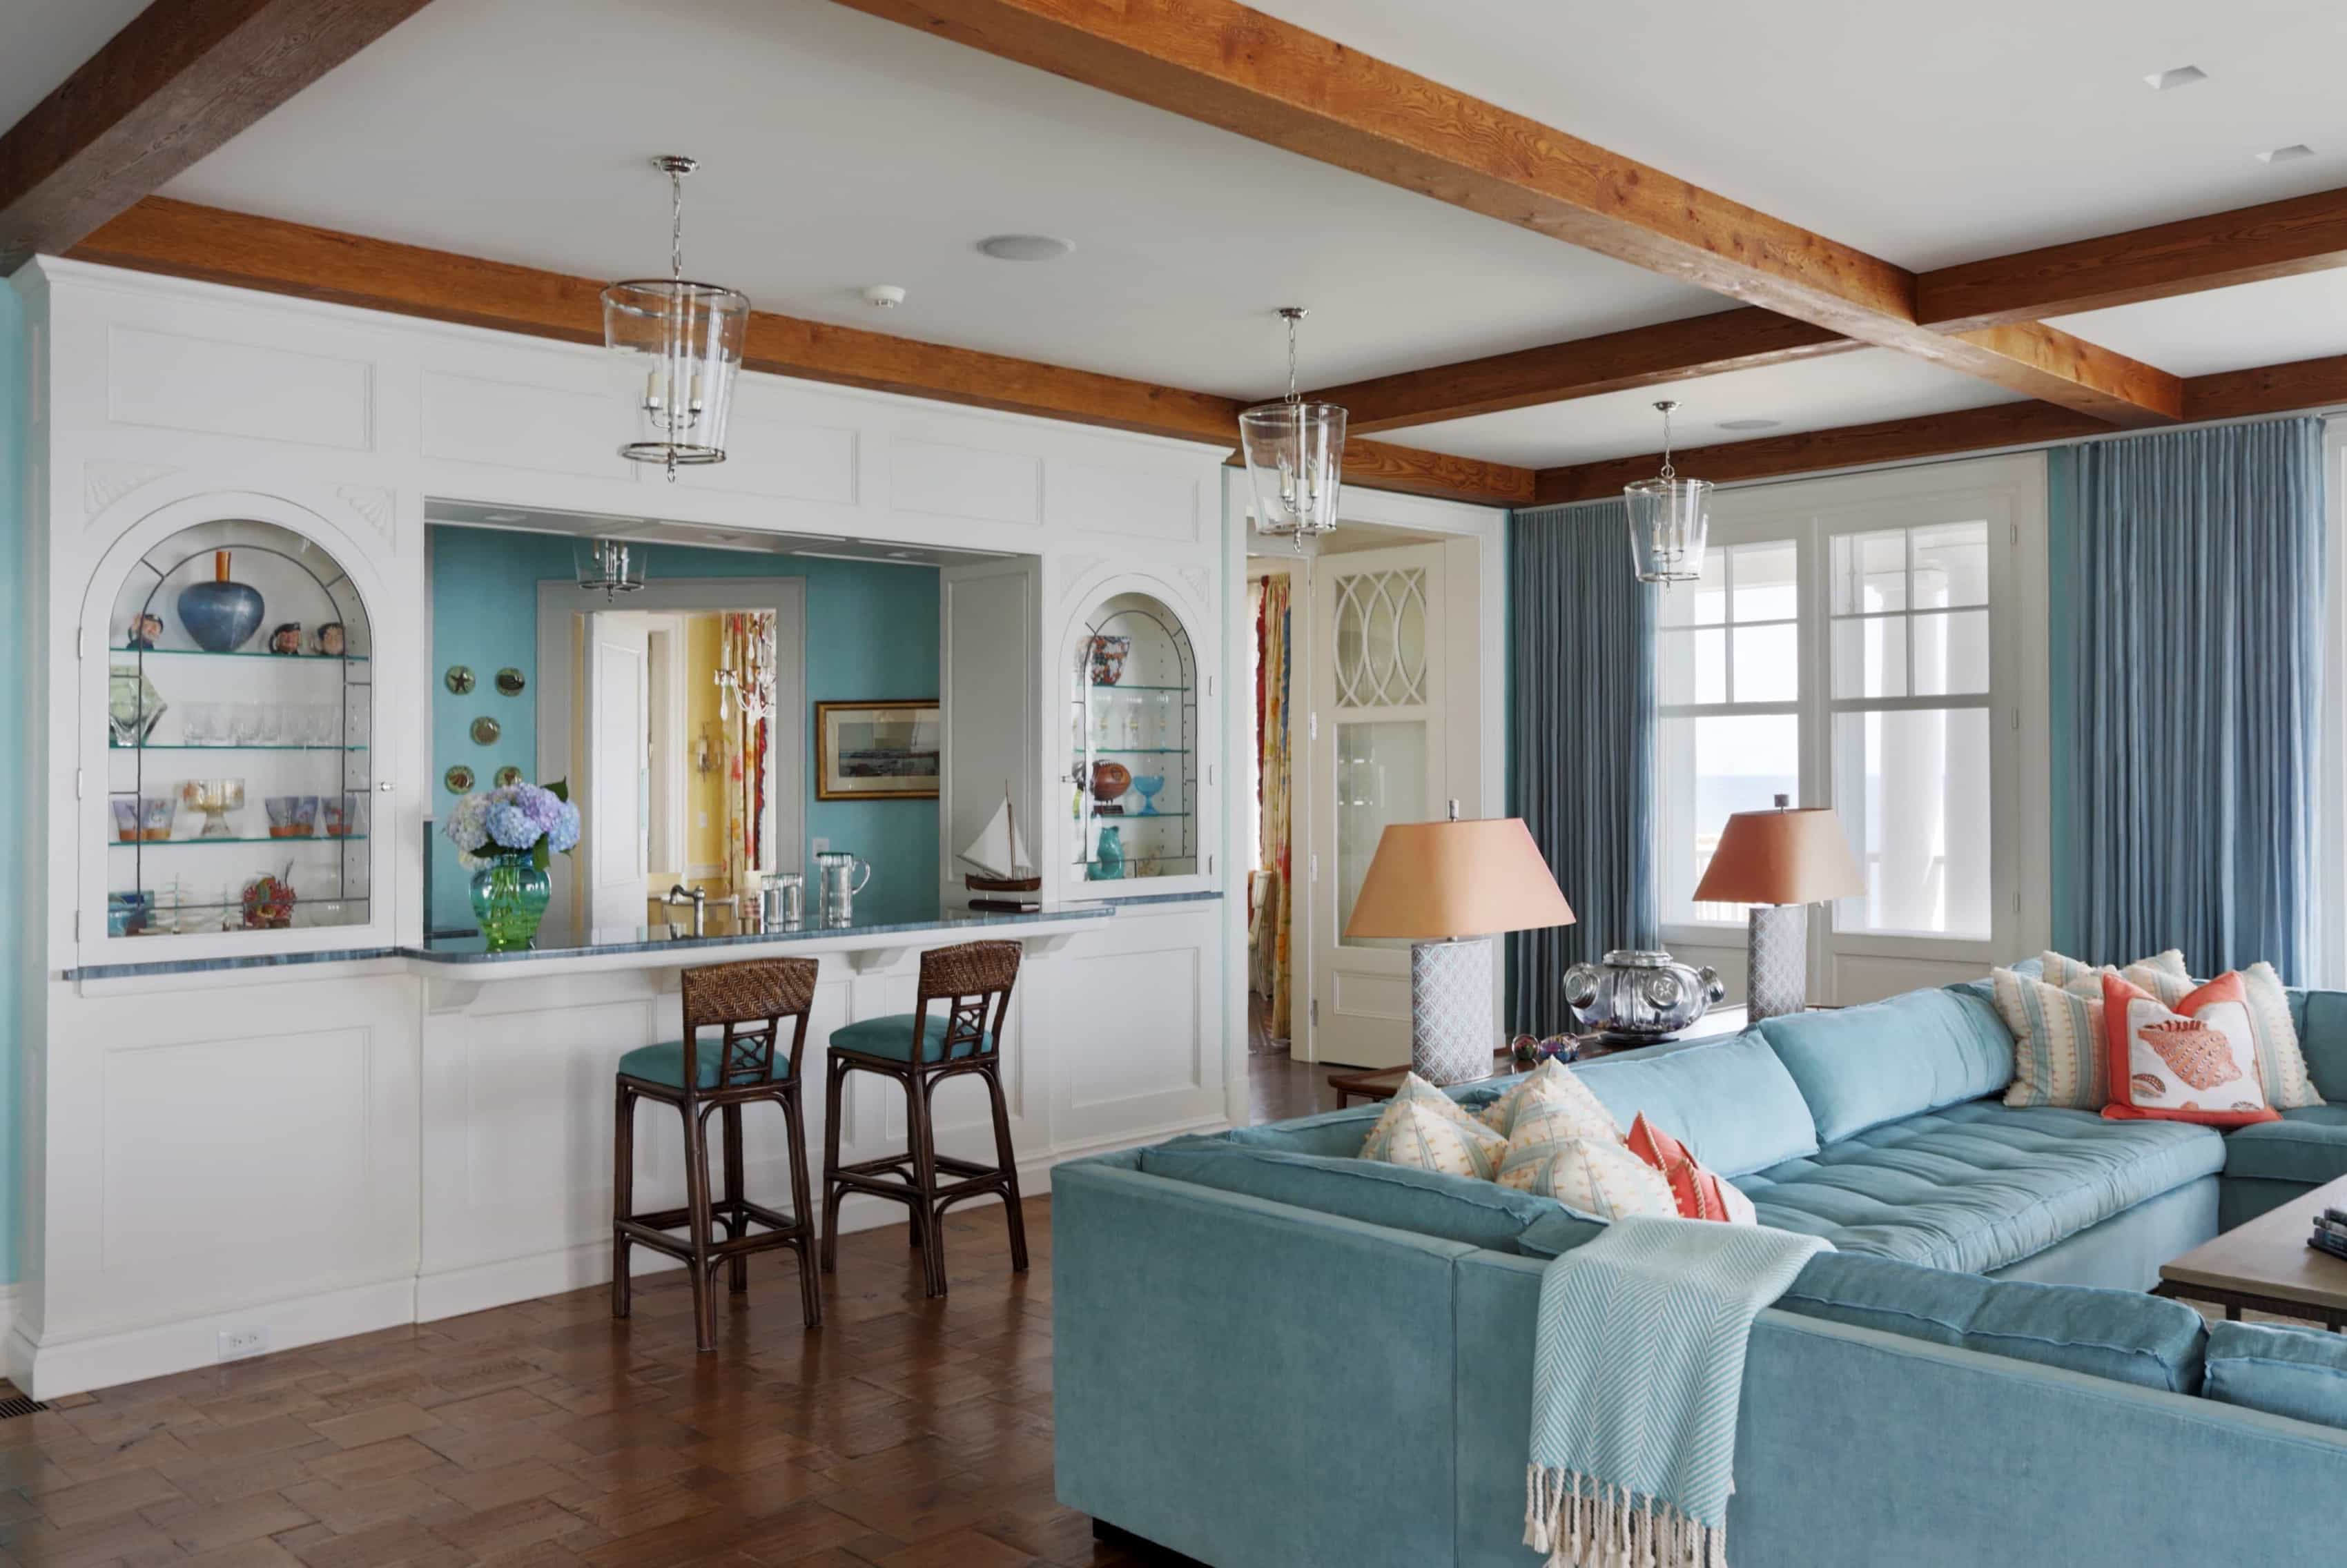 Featured Image of Pops Of Turquoise Play Up The Coastal Style Kitchen Interior